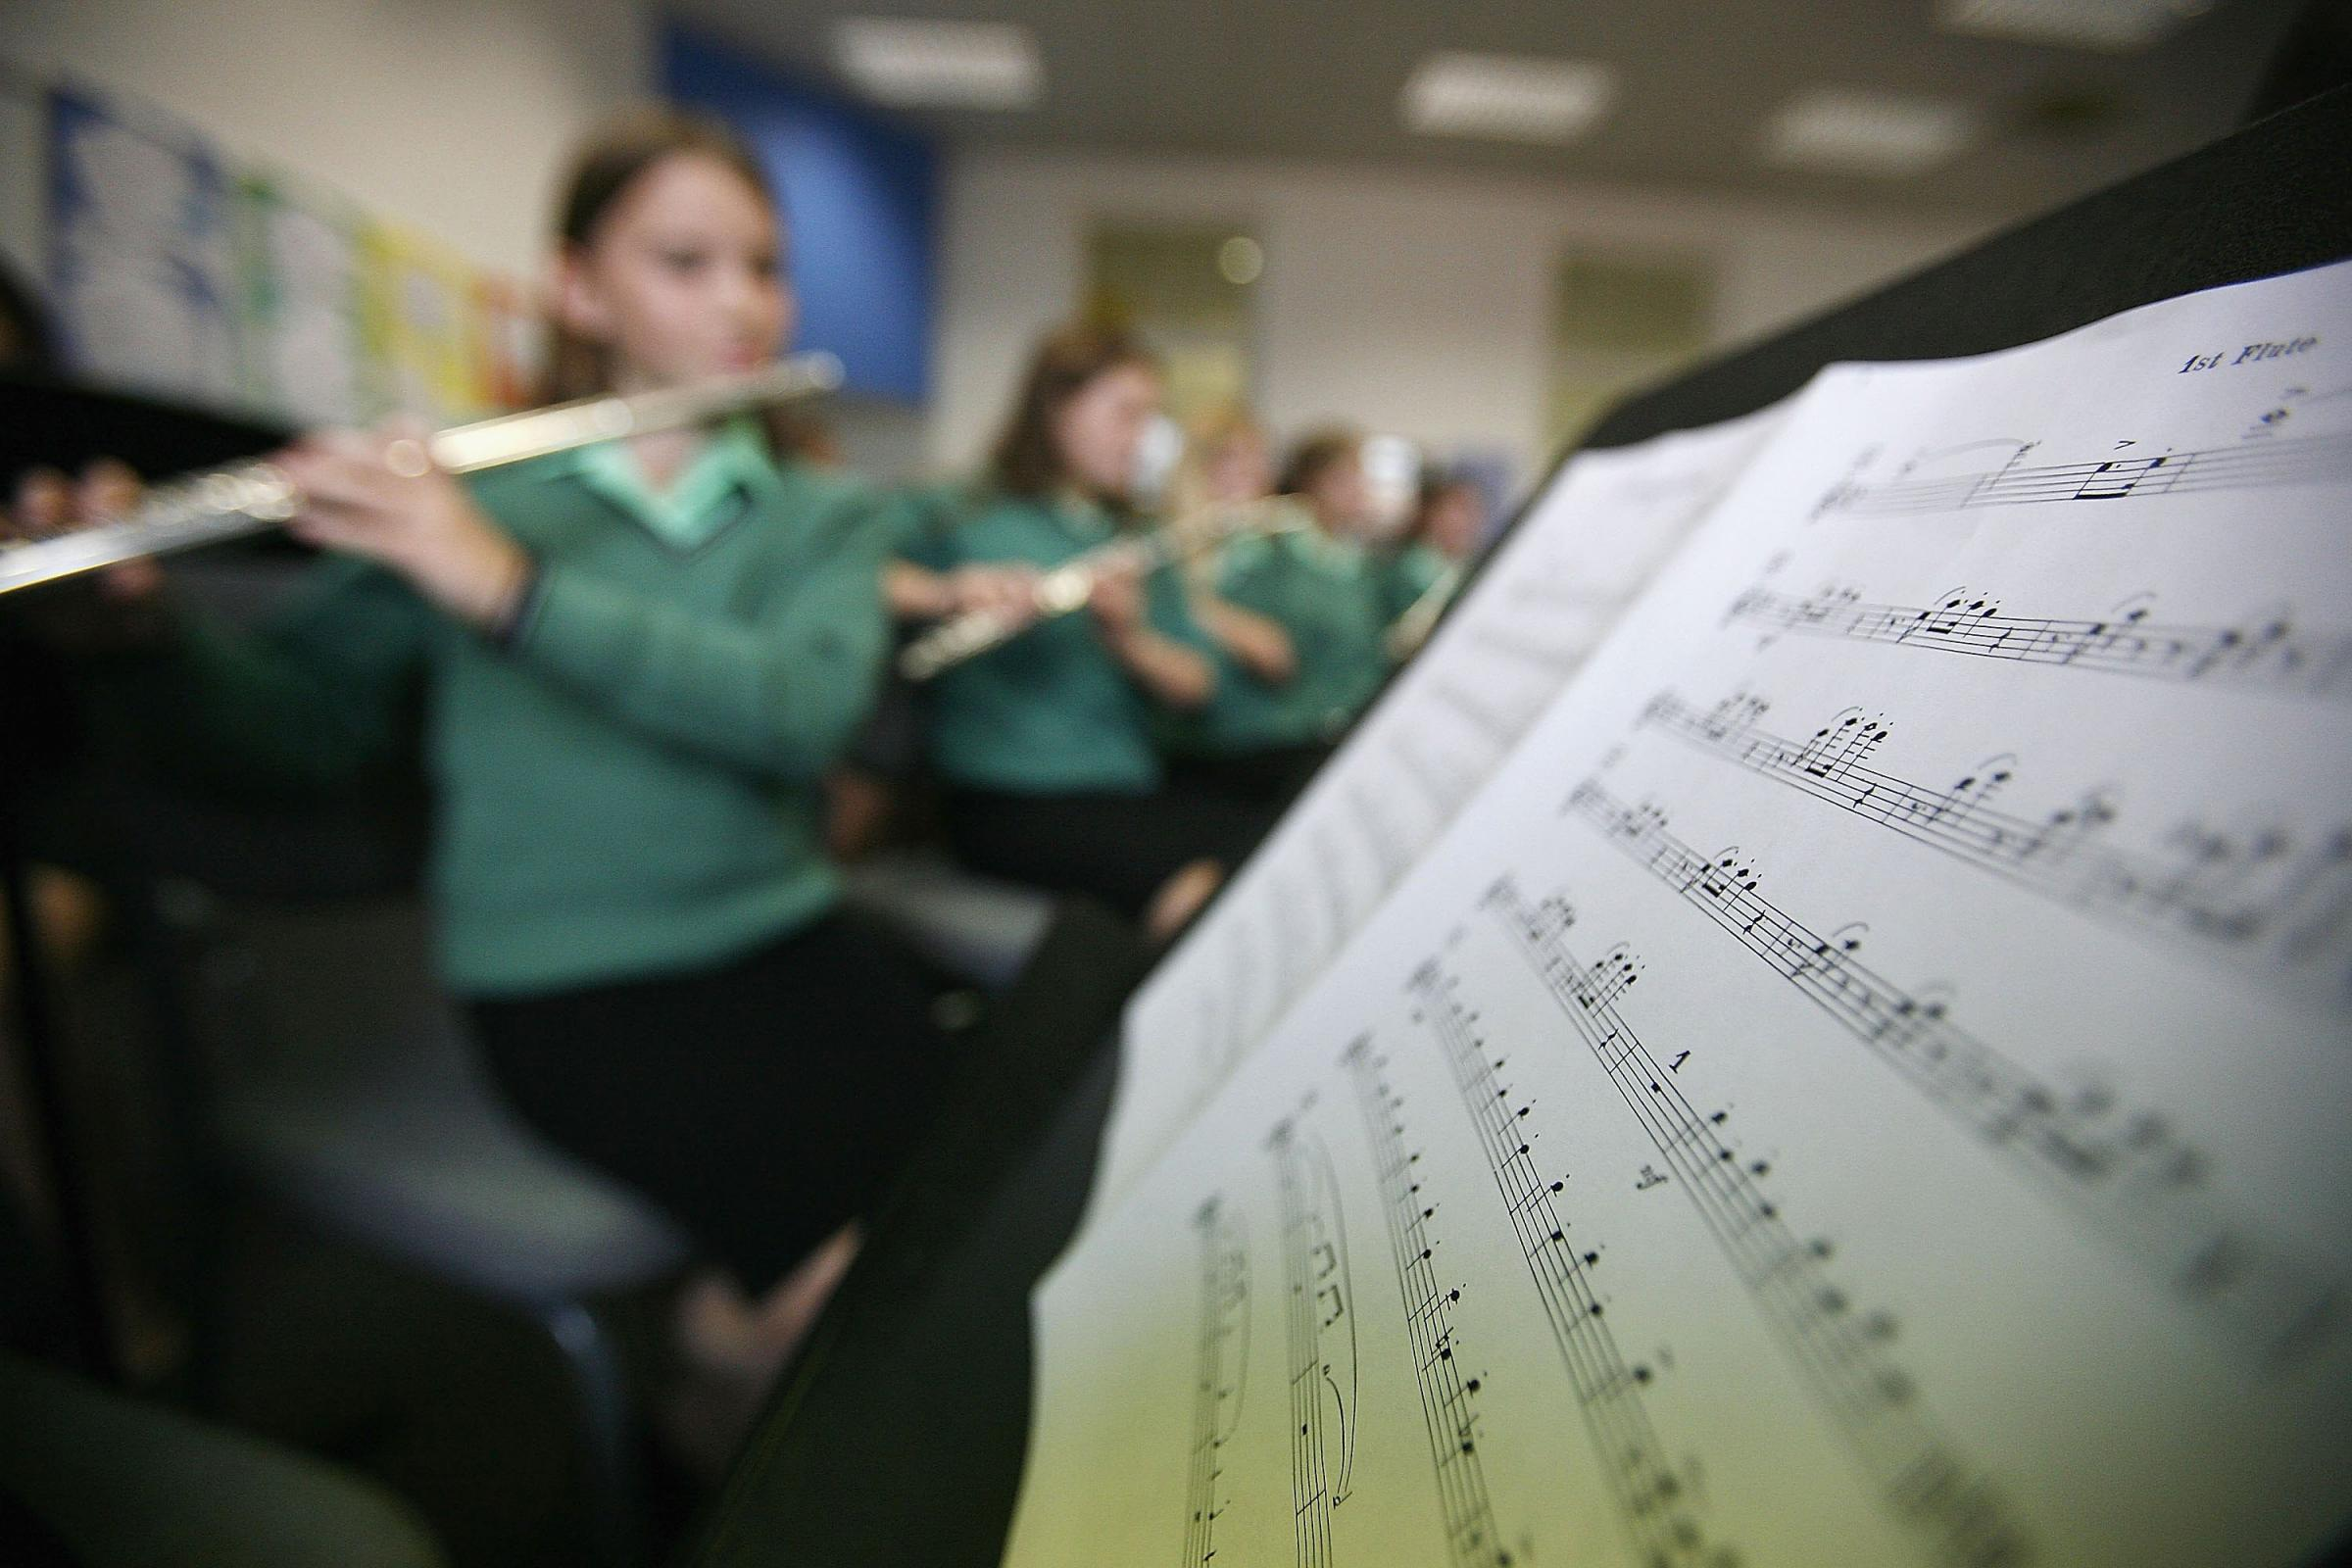 Petition launched to abolish musical instrument tuition fees in schools